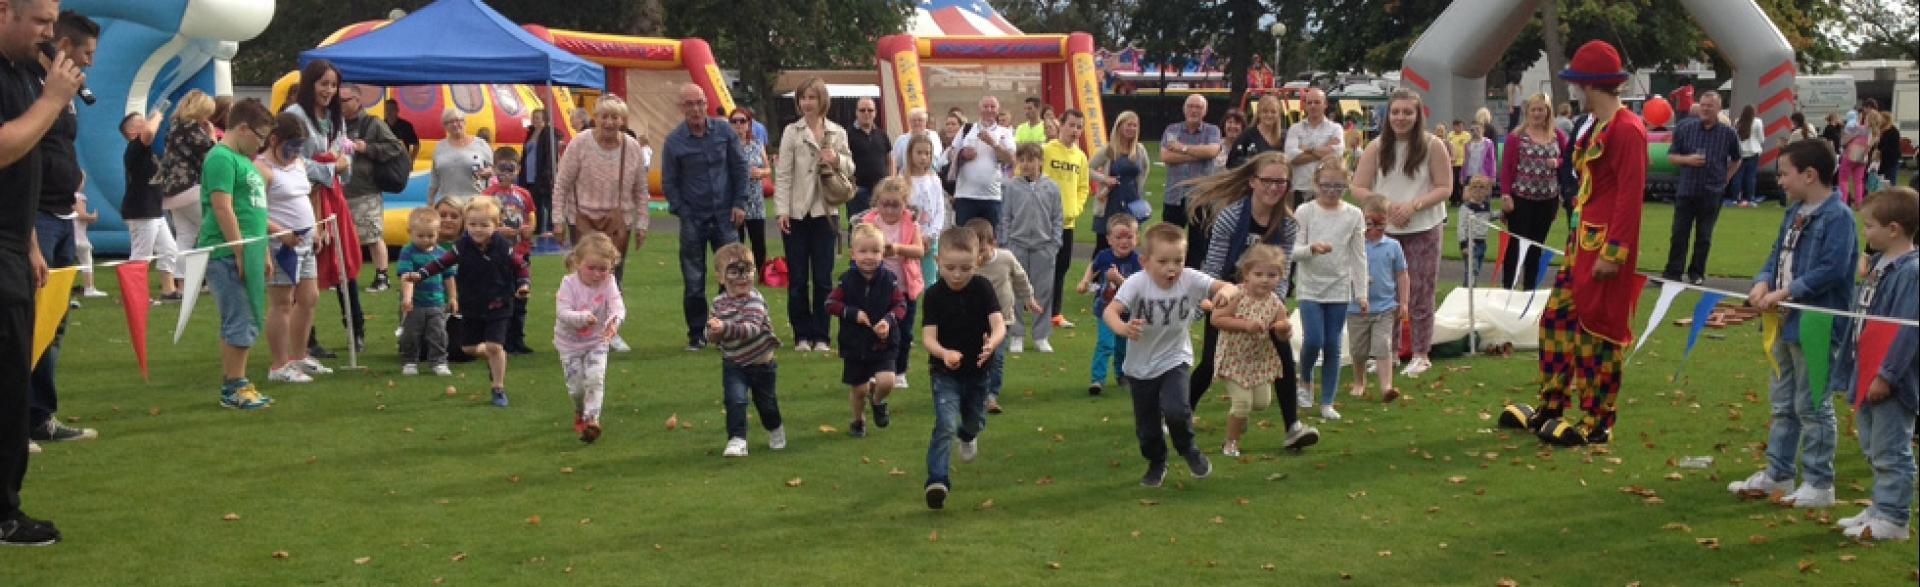 Corporate Fun Day, Hamilton, September 2014